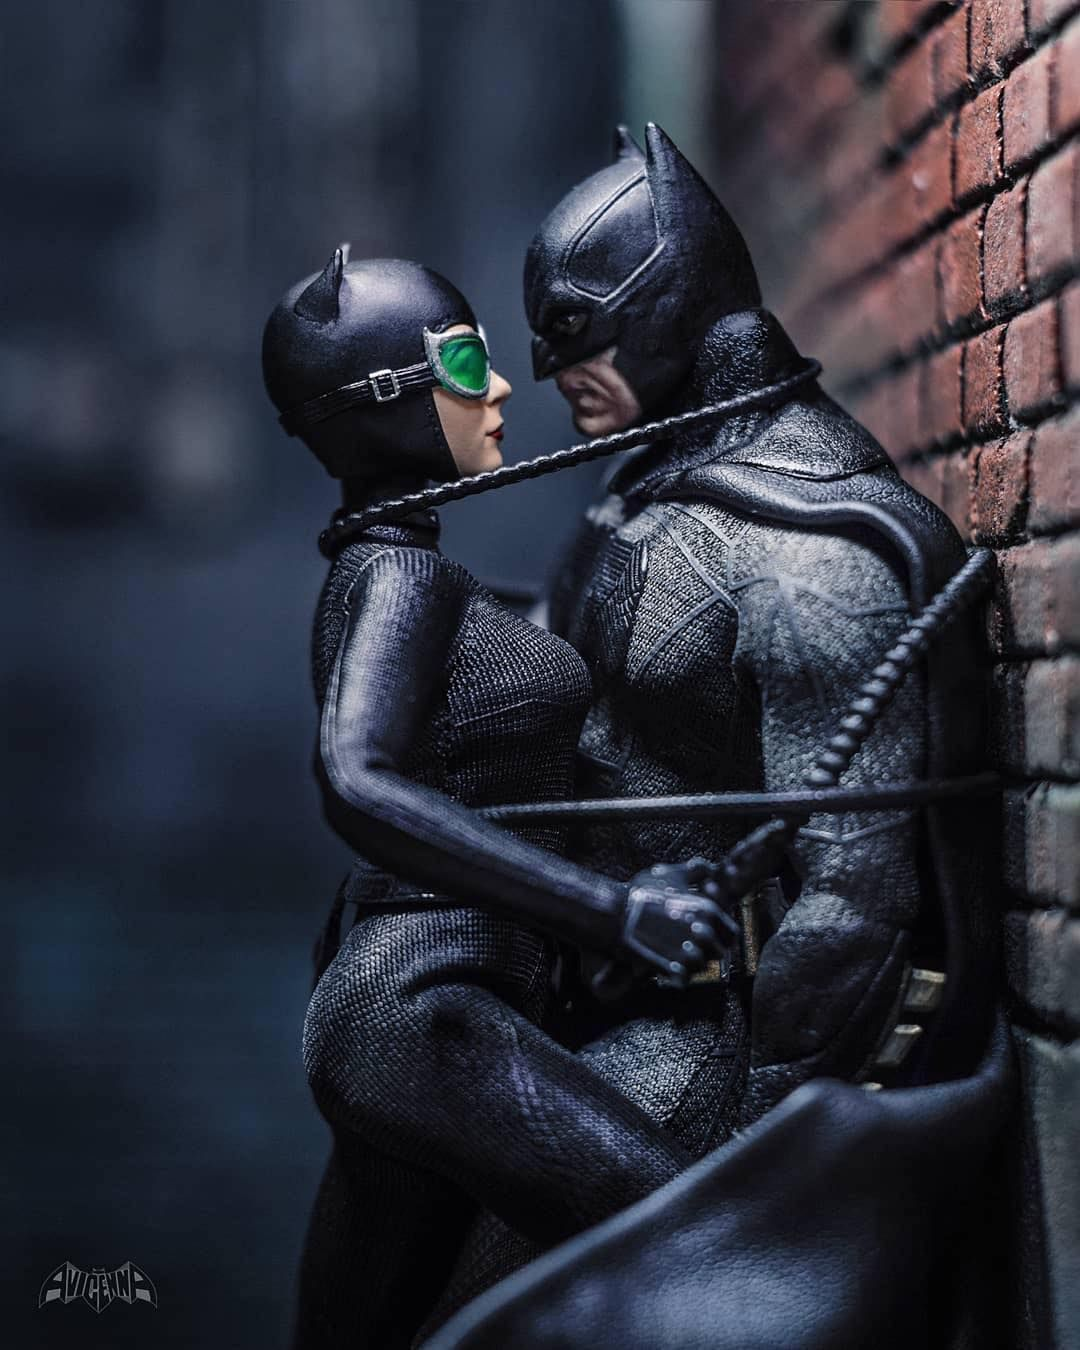 Wow Amazing Shot Of The New Mezcotoyz Catwoman Figure With